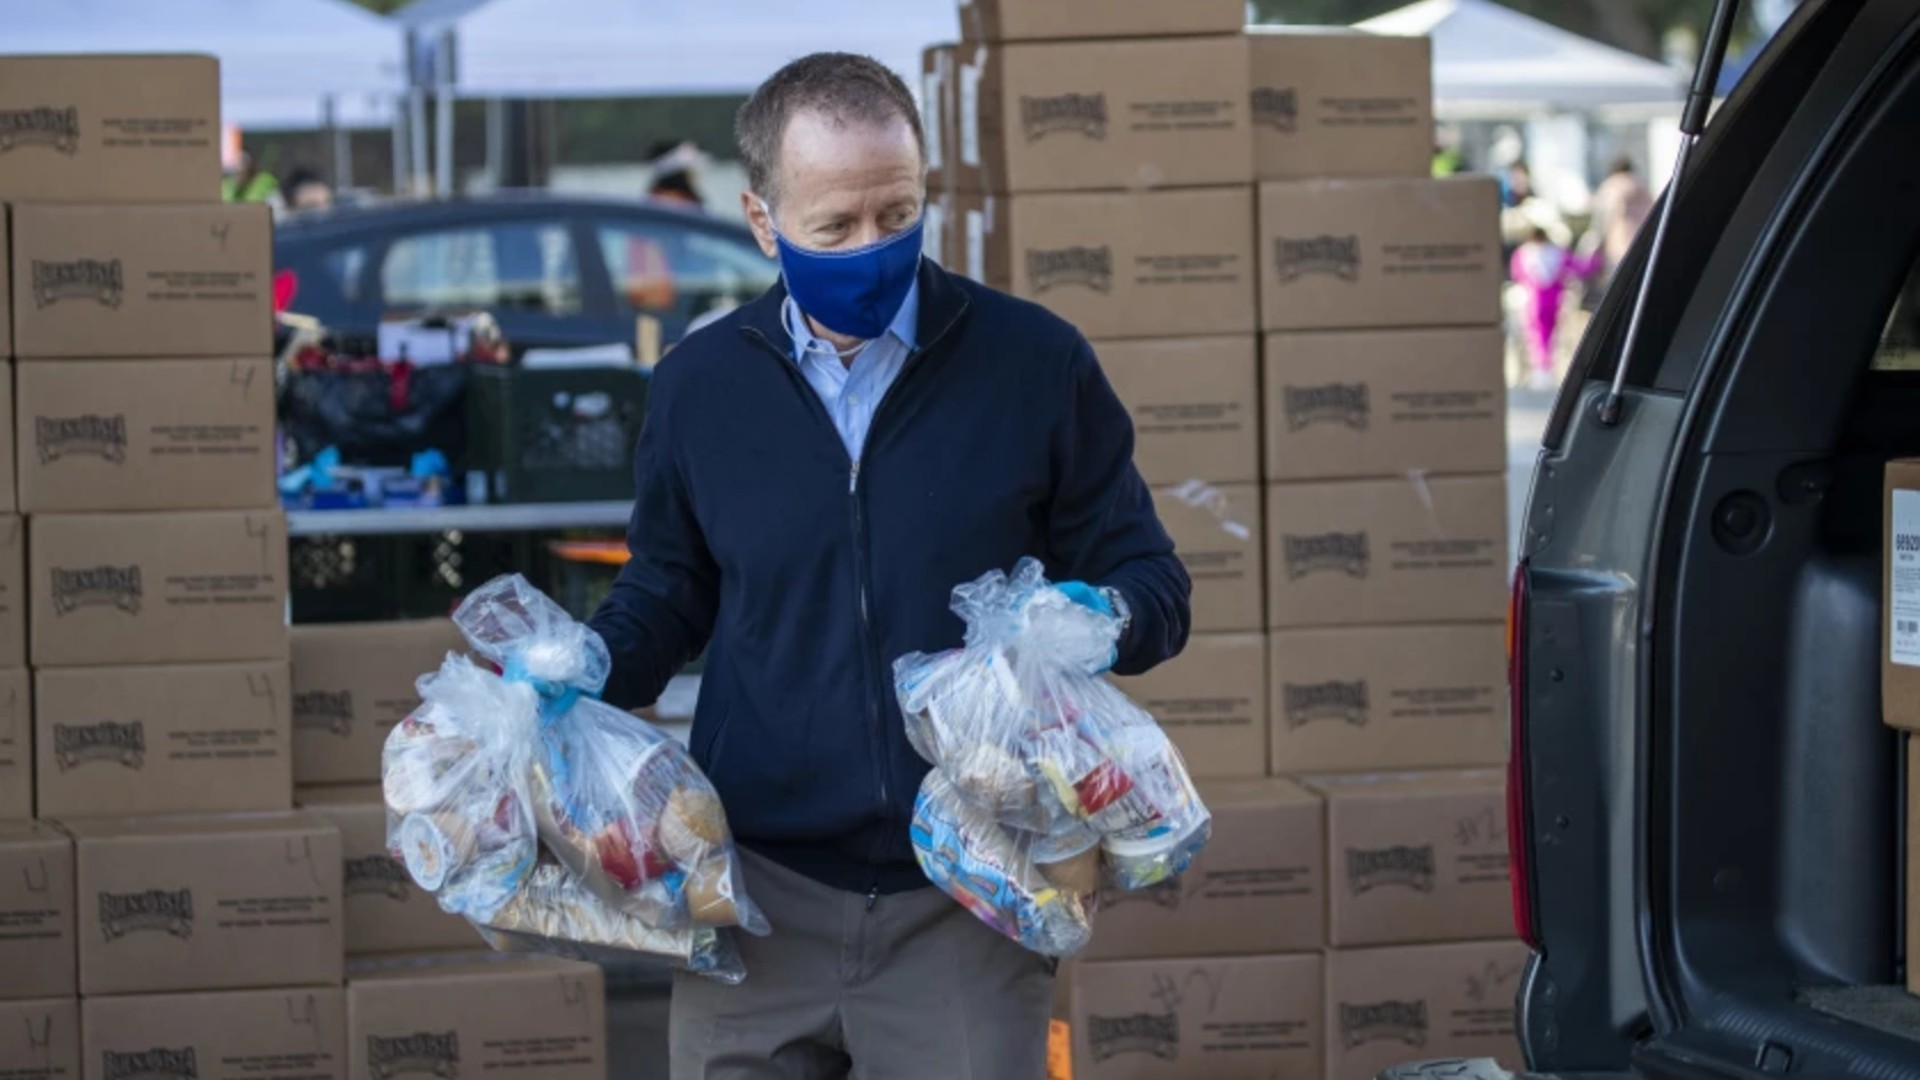 L.A. schools Supt. Austin Beutner helps distribute free meals in November at South Gate High School, part of a massive effort that he cited Tuesday in his farewell address at the Hollywood Bowl. (Allen J. Schaben / Los Angeles Times)